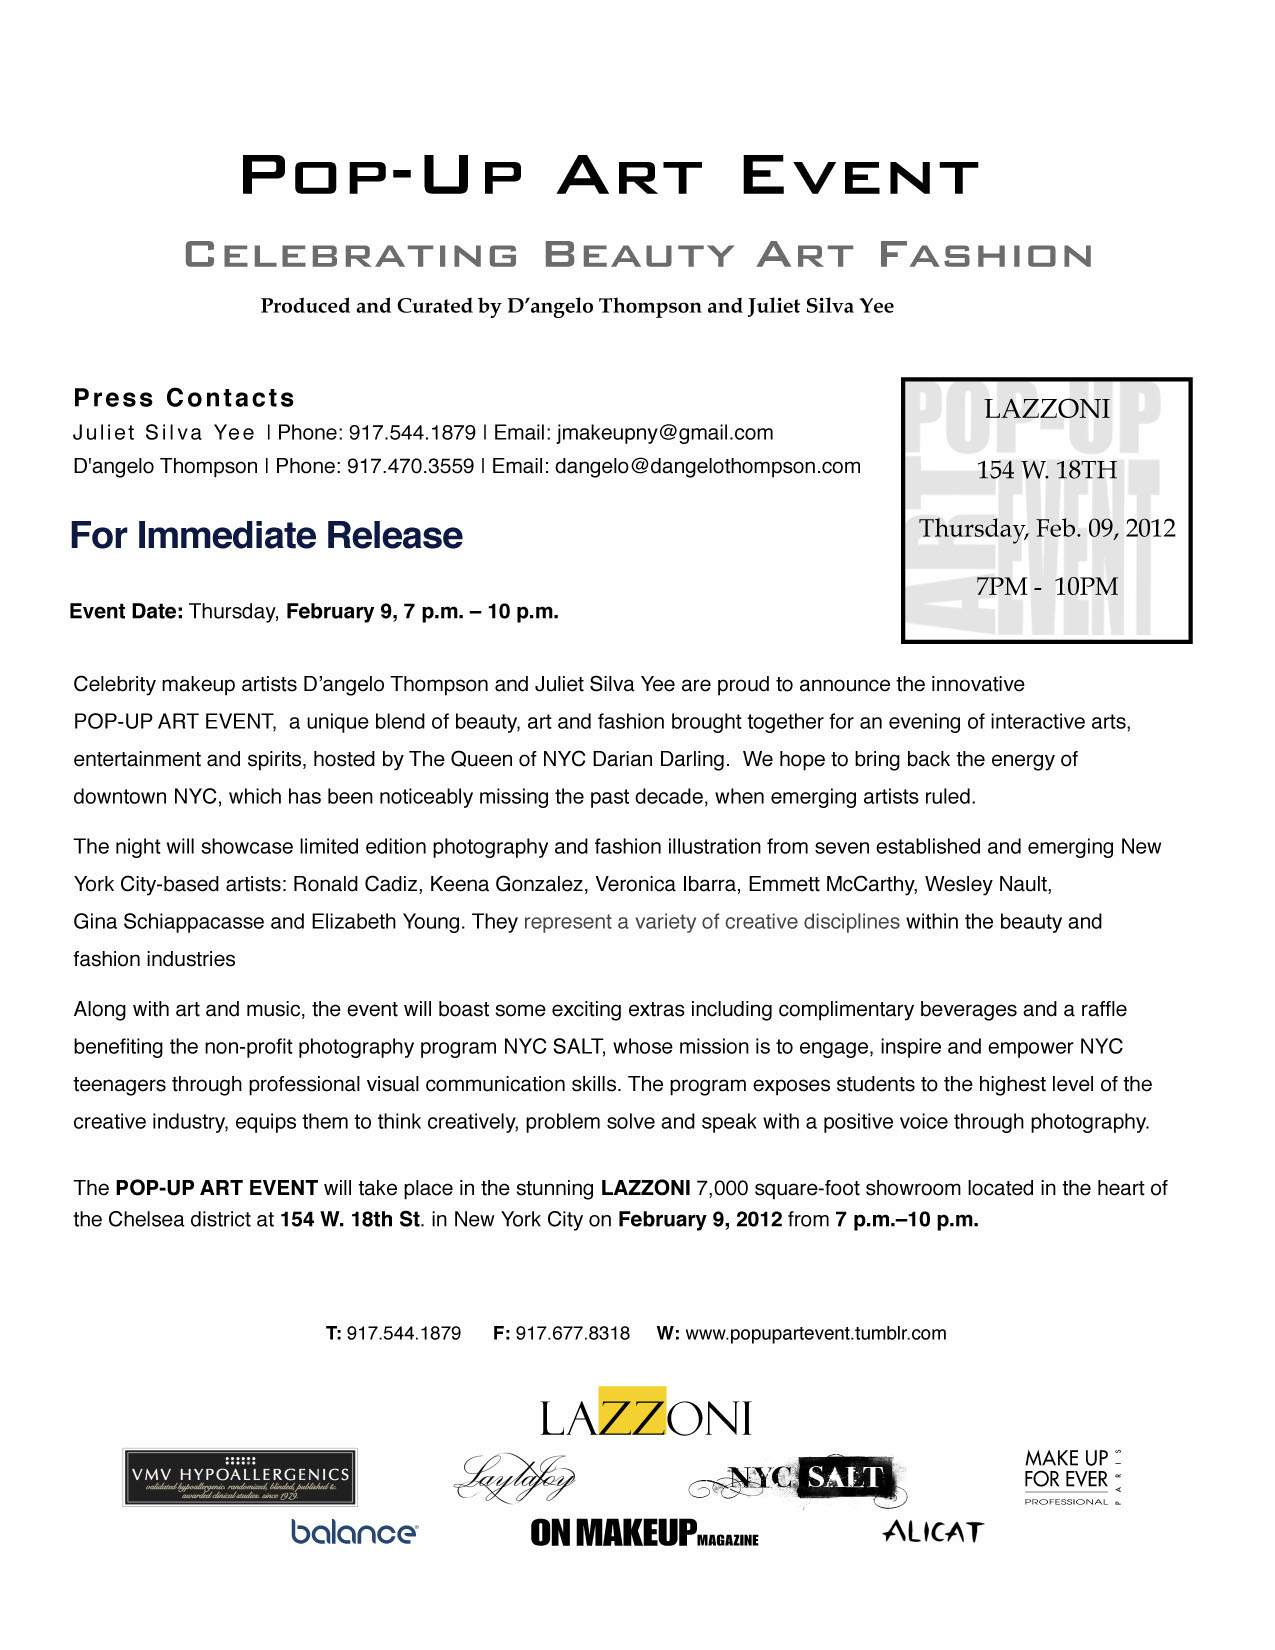 How to write a press release for a fashion event